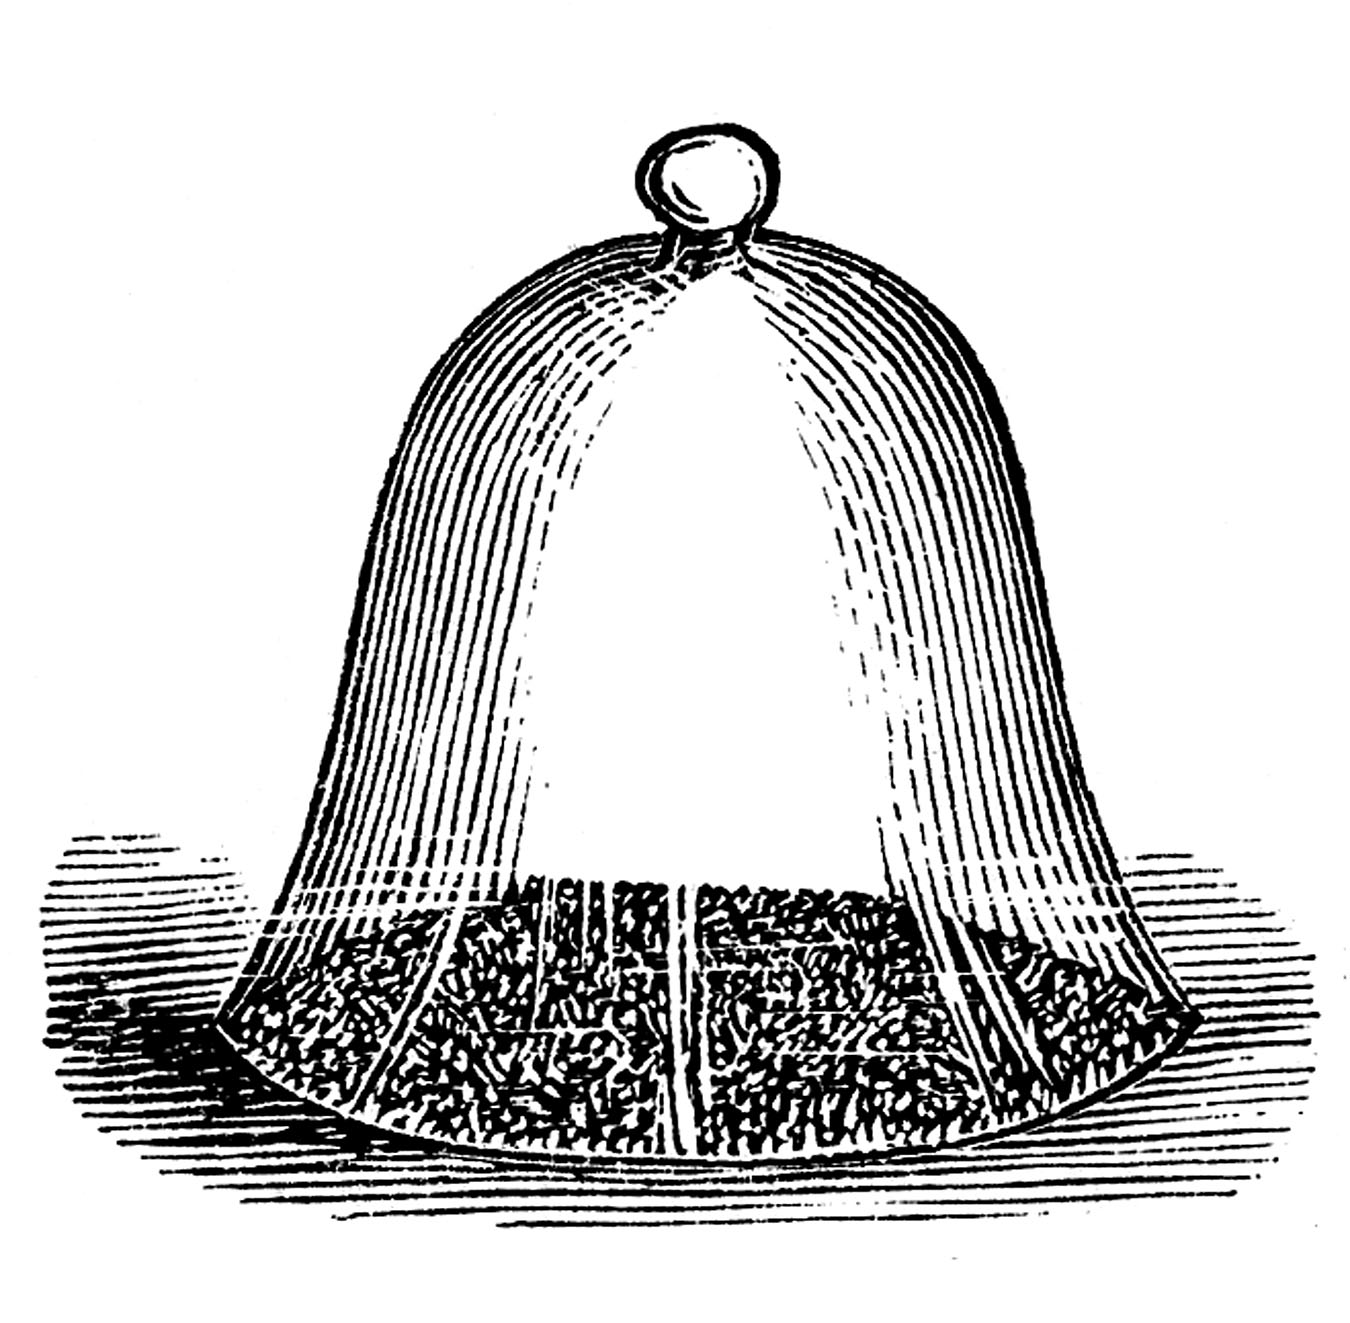 book dirt all roads lead to book dirt bell jar clip art edition vintage clip art of a literal bell jar print and save for the church bulletin